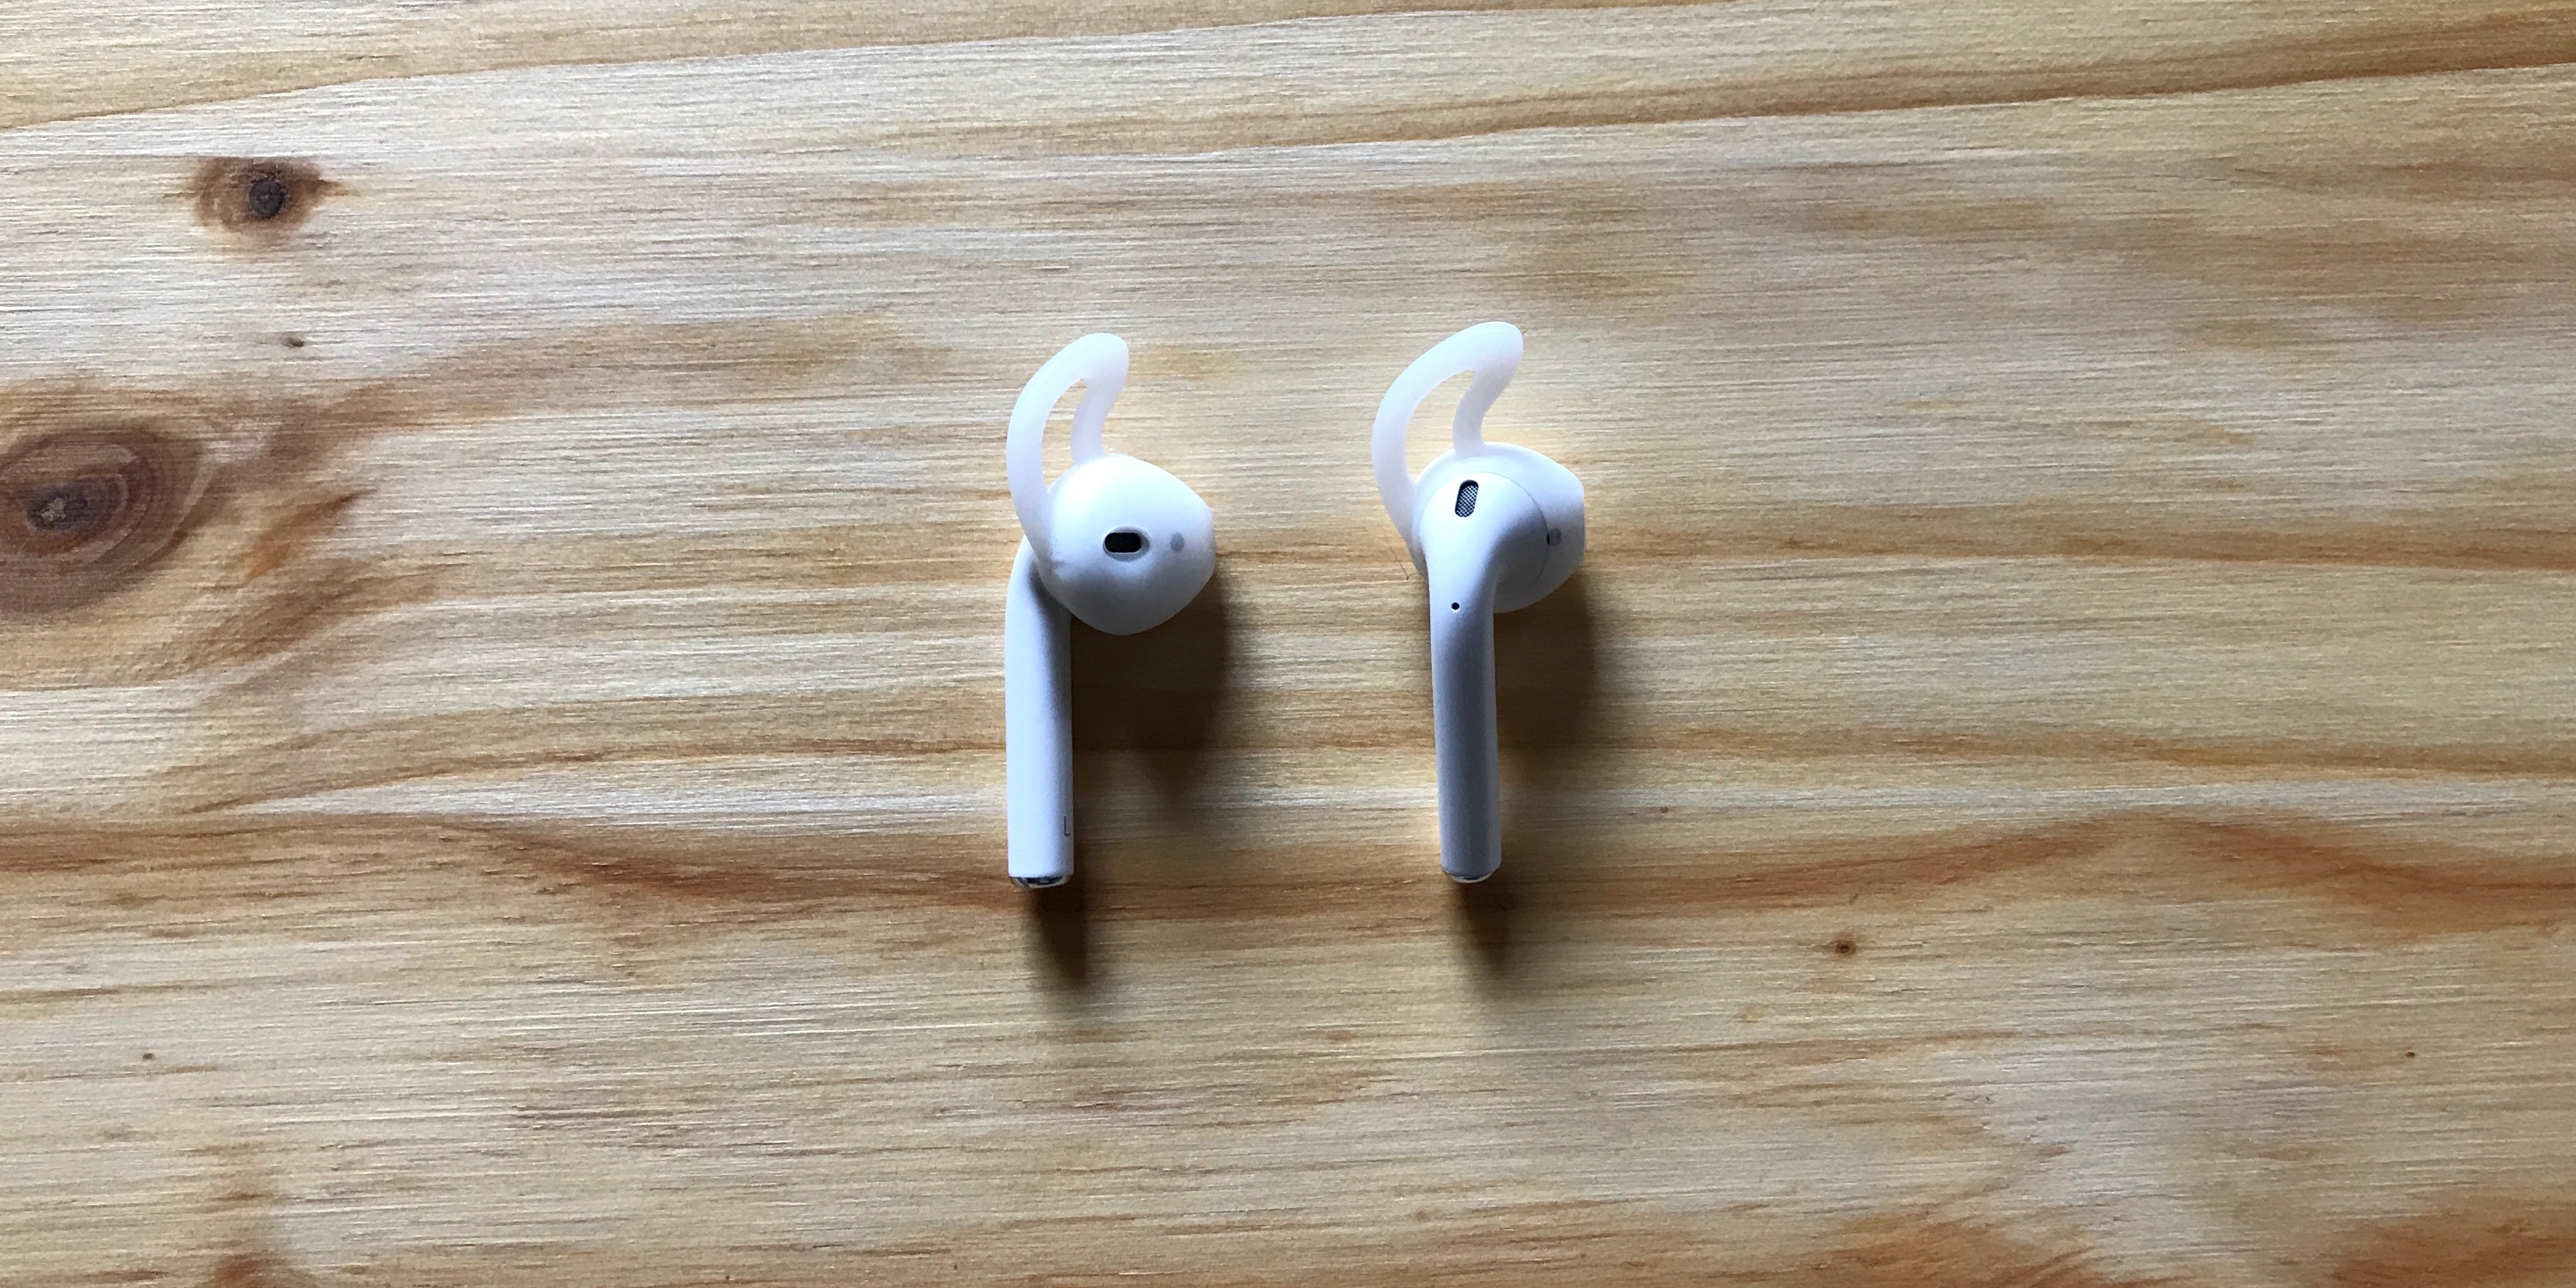 on sale e9a20 6d87e Hands on with the best AirPods accessories - 9to5Mac